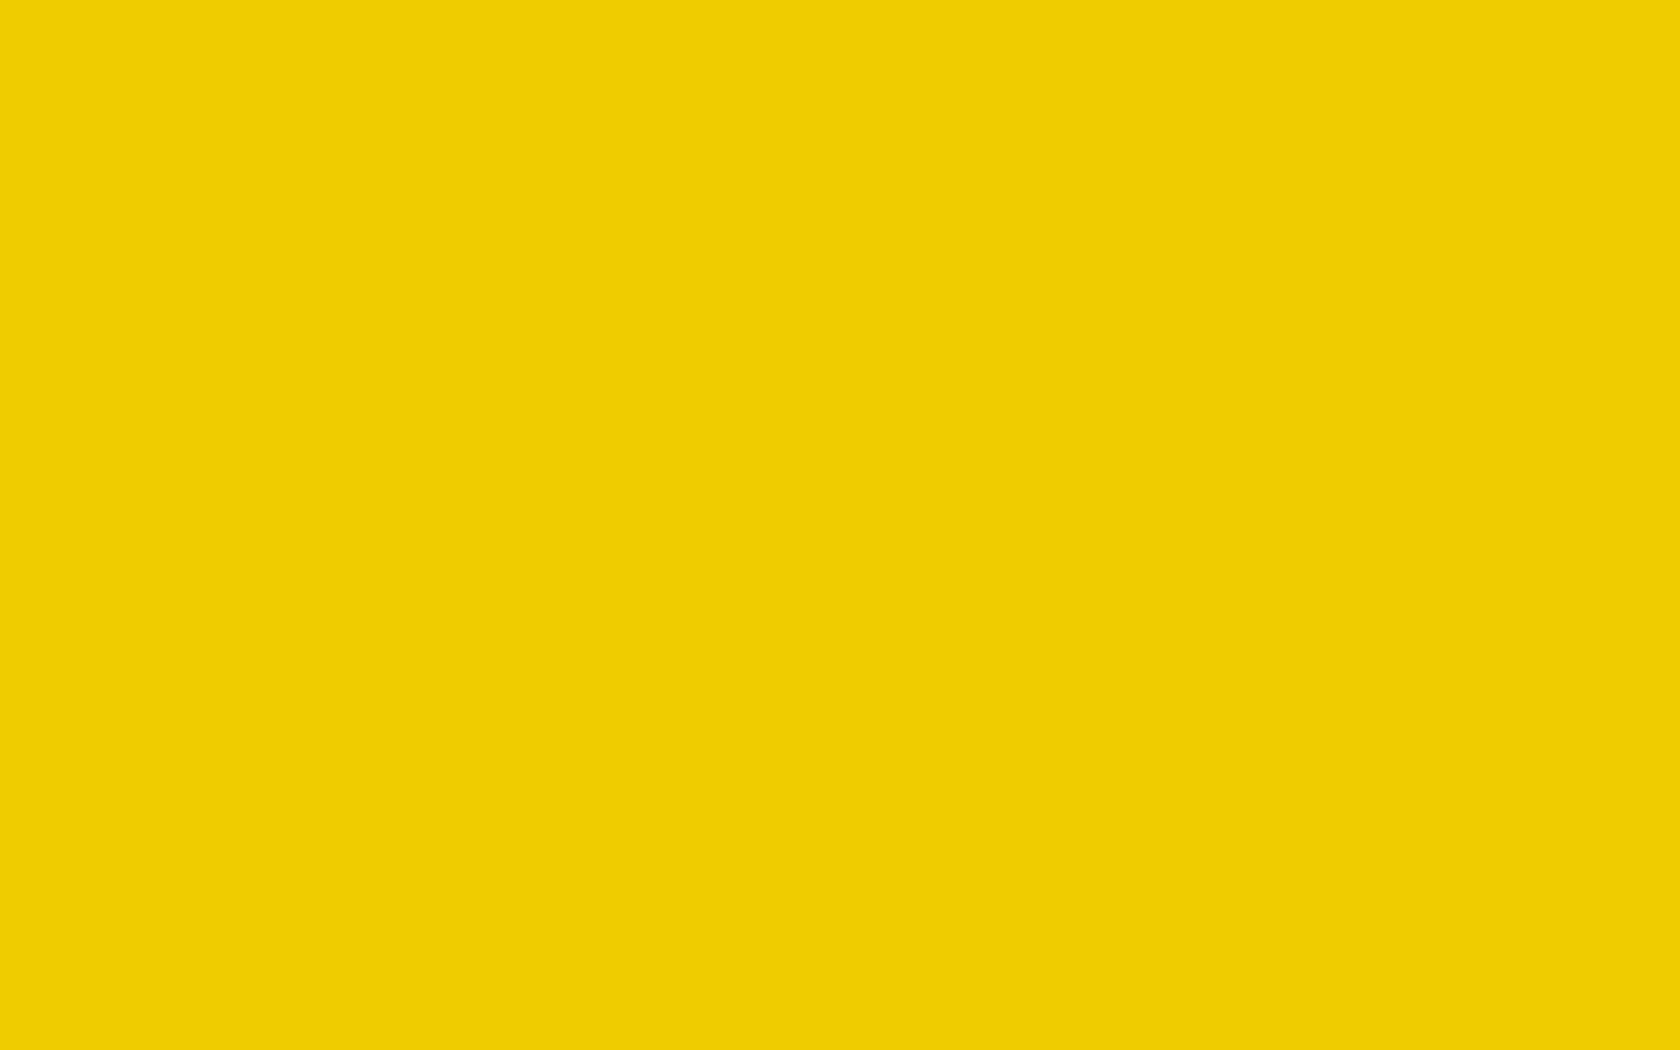 1680x1050 Yellow Munsell Solid Color Background